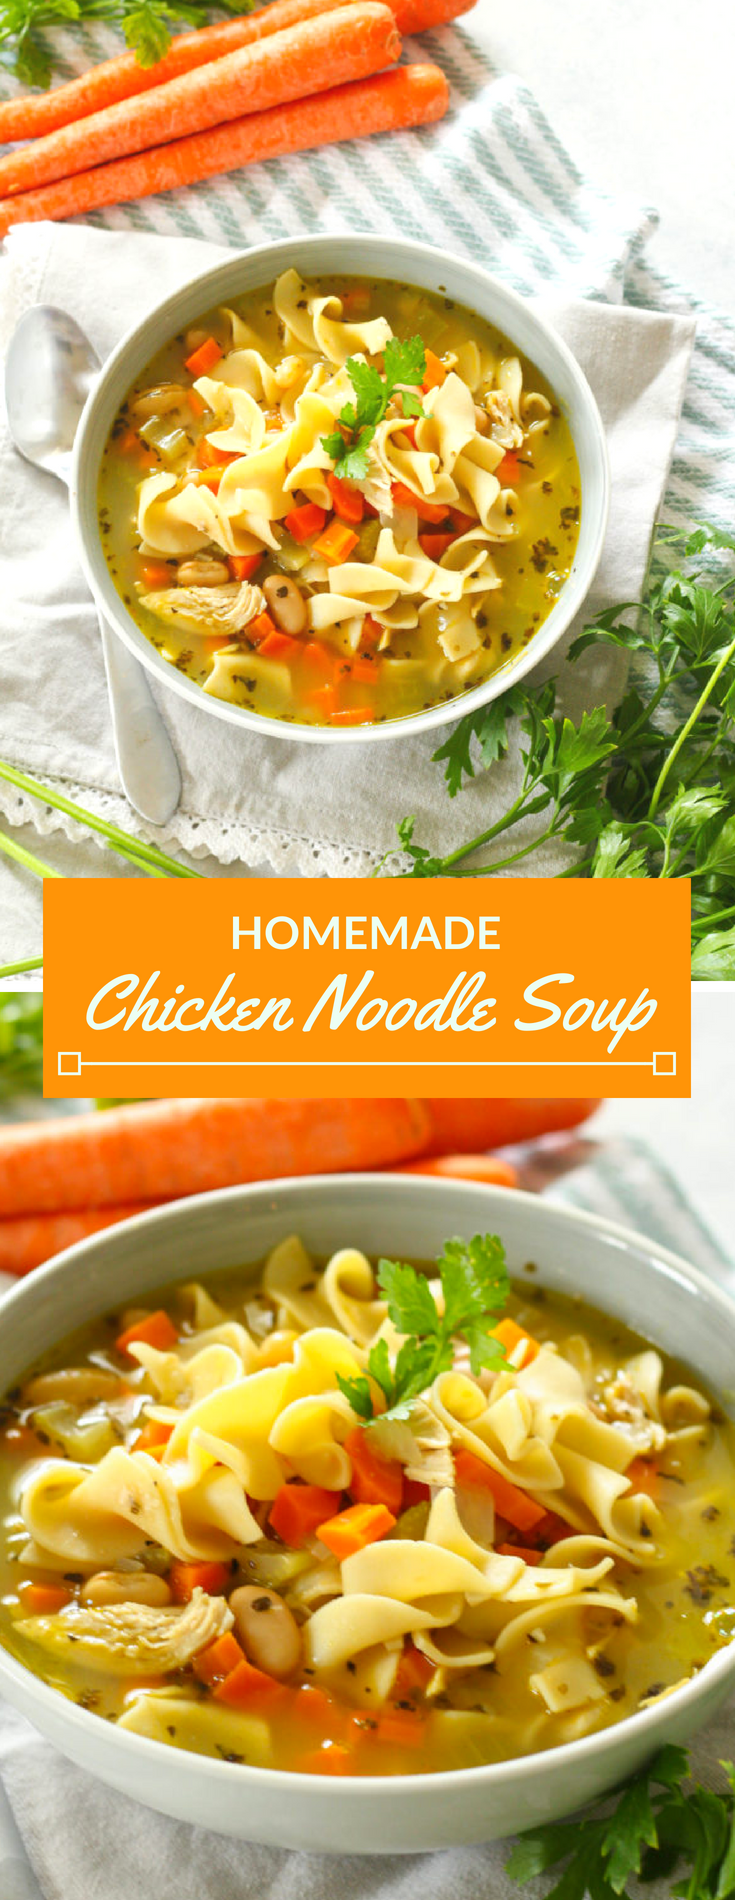 Homemade chicken noodle soup that's ready in under 30 minutes! Full of juicy chicken, tender beans, soft egg noodles and assorted veggies.